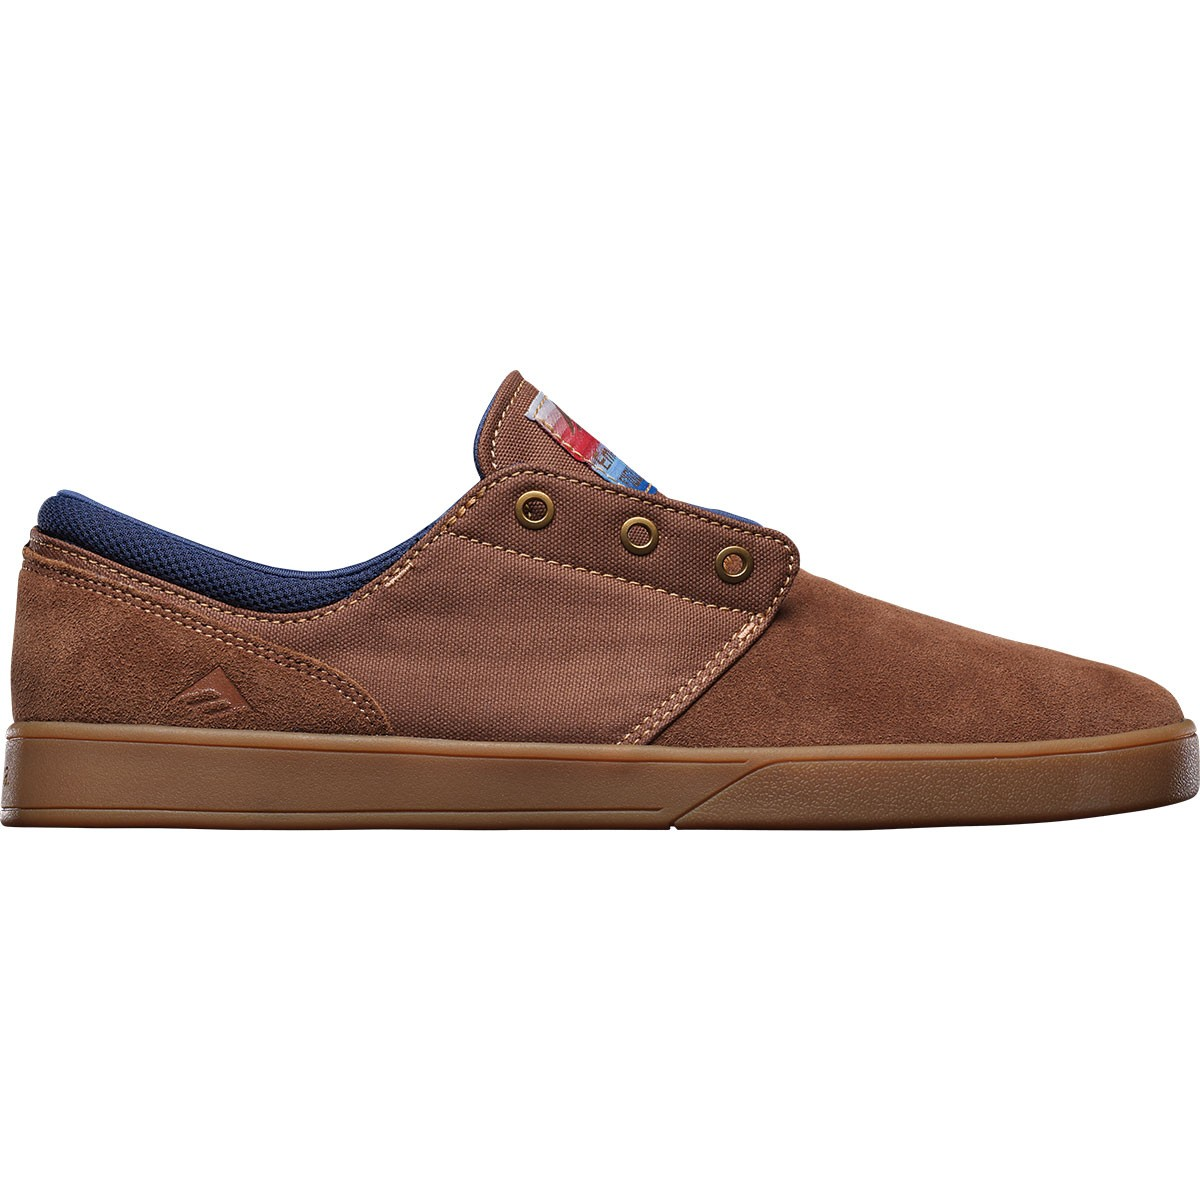 Emerica The Figueroa Shoes - Brown/Gum - 10.0